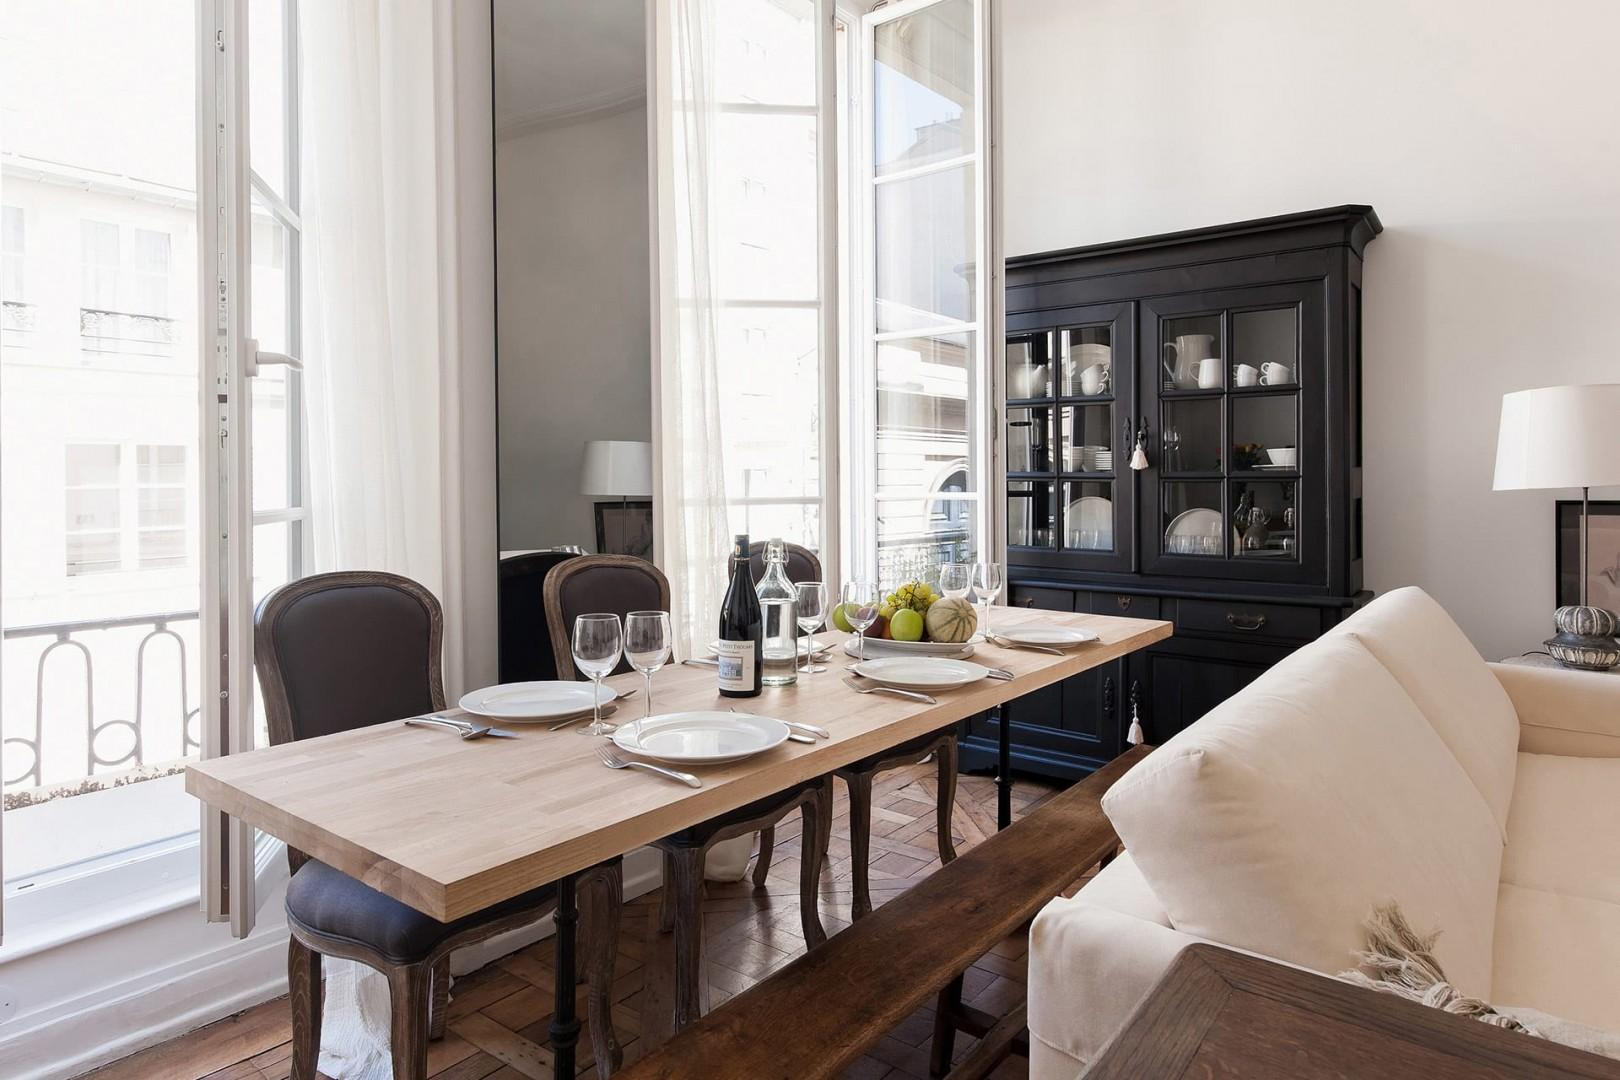 The dining table has room for six guests, perfect for dinner parties!